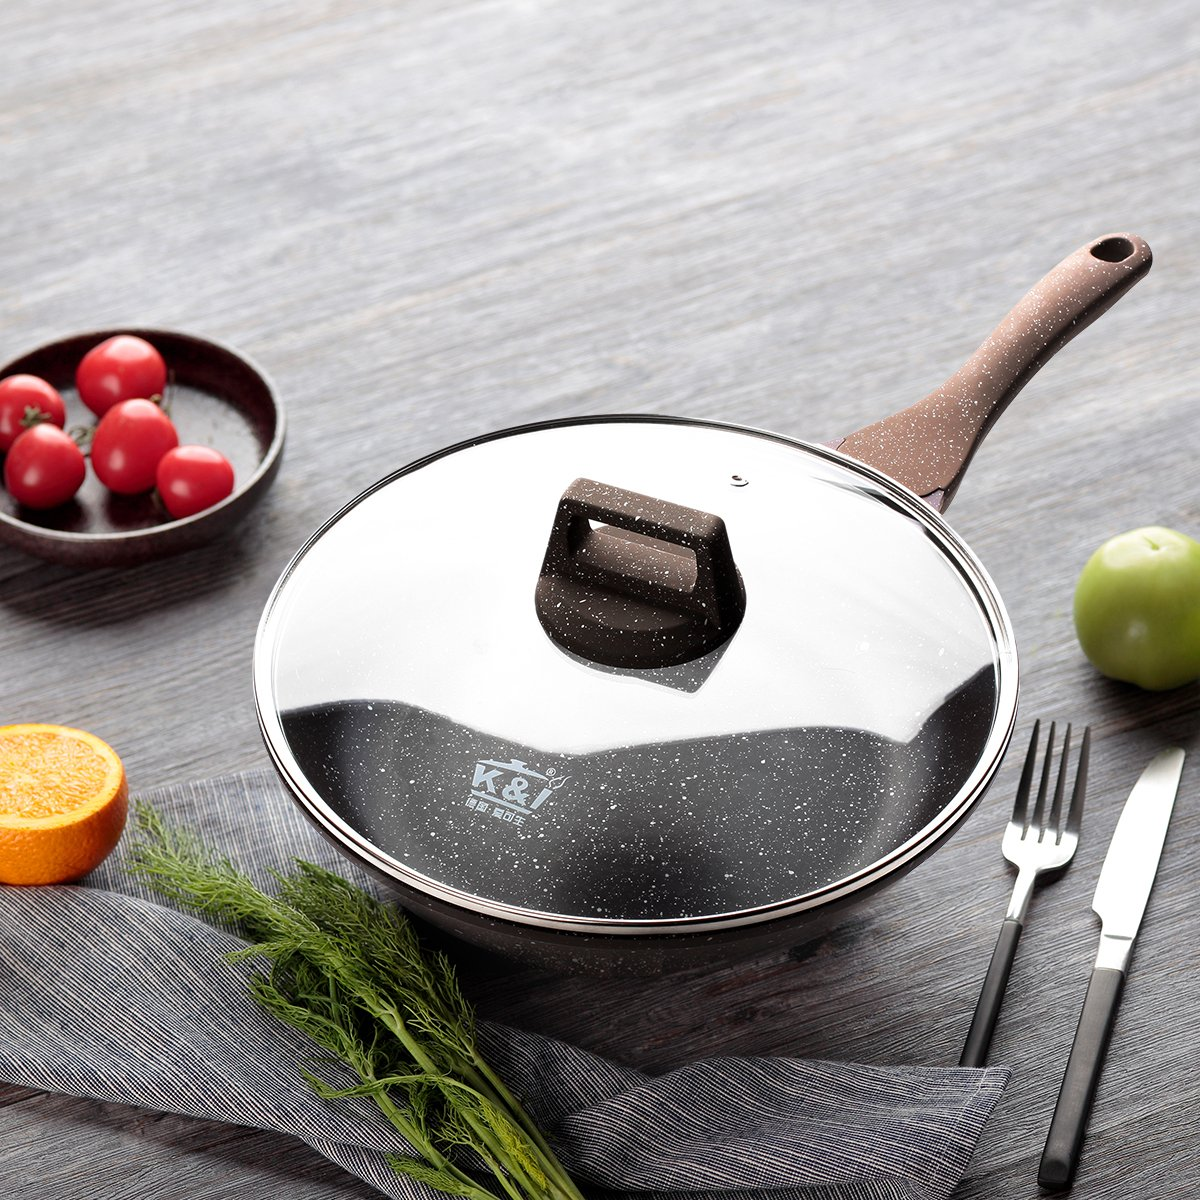 KI 11(28cm) Natural Coated Omelet Fry Pan with Glass Lid Aluminum Wok Pan, Stone&Ceramic Nonstick Omelette Fry Pan, PFOA Free, 1 Year Warranty